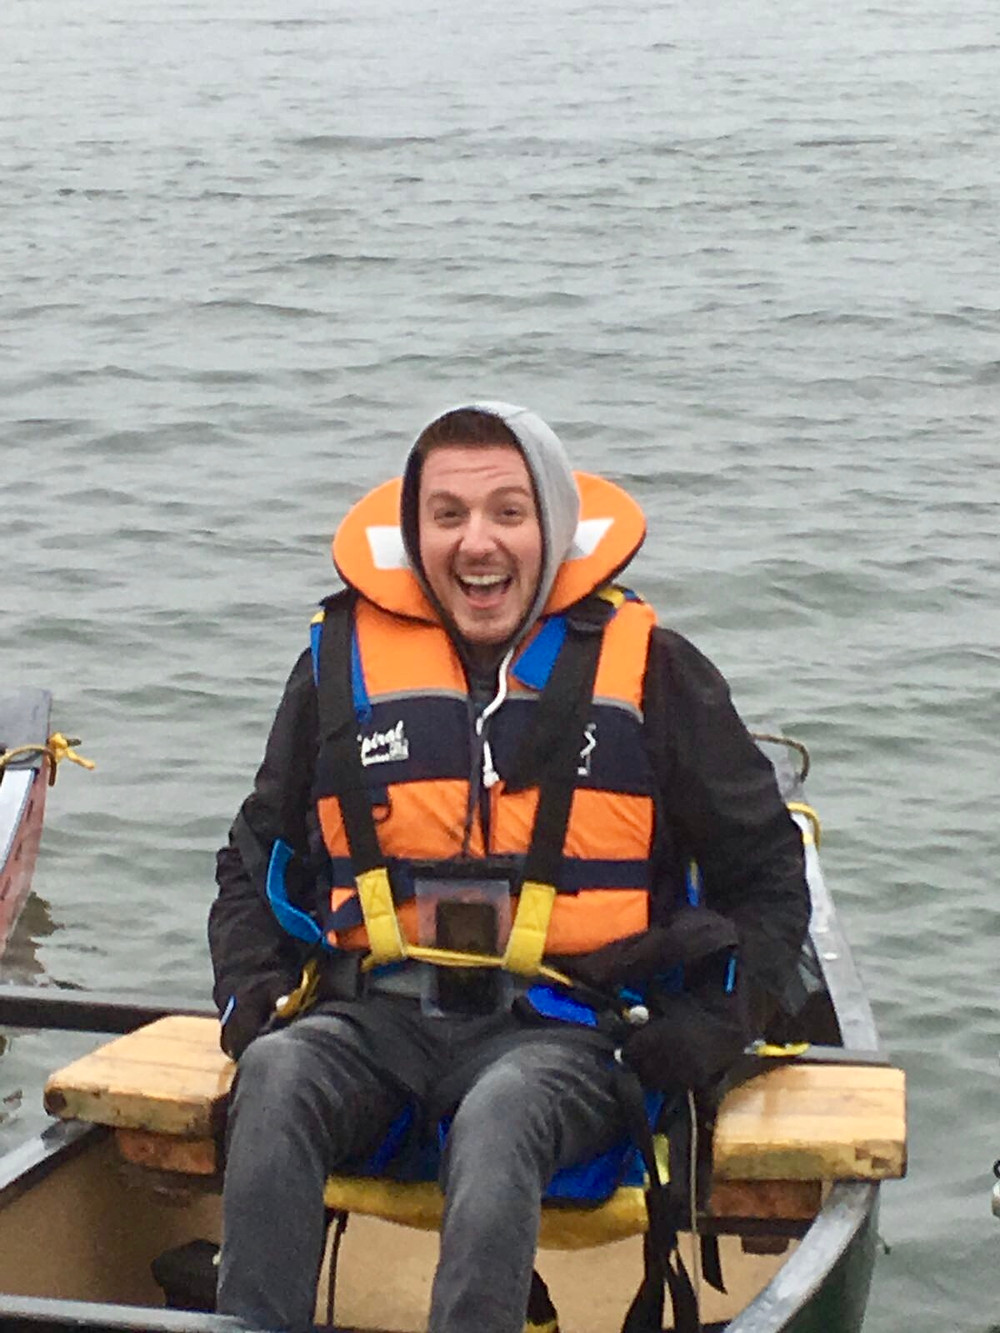 Ross wearing his life jacket, sat in the canoe